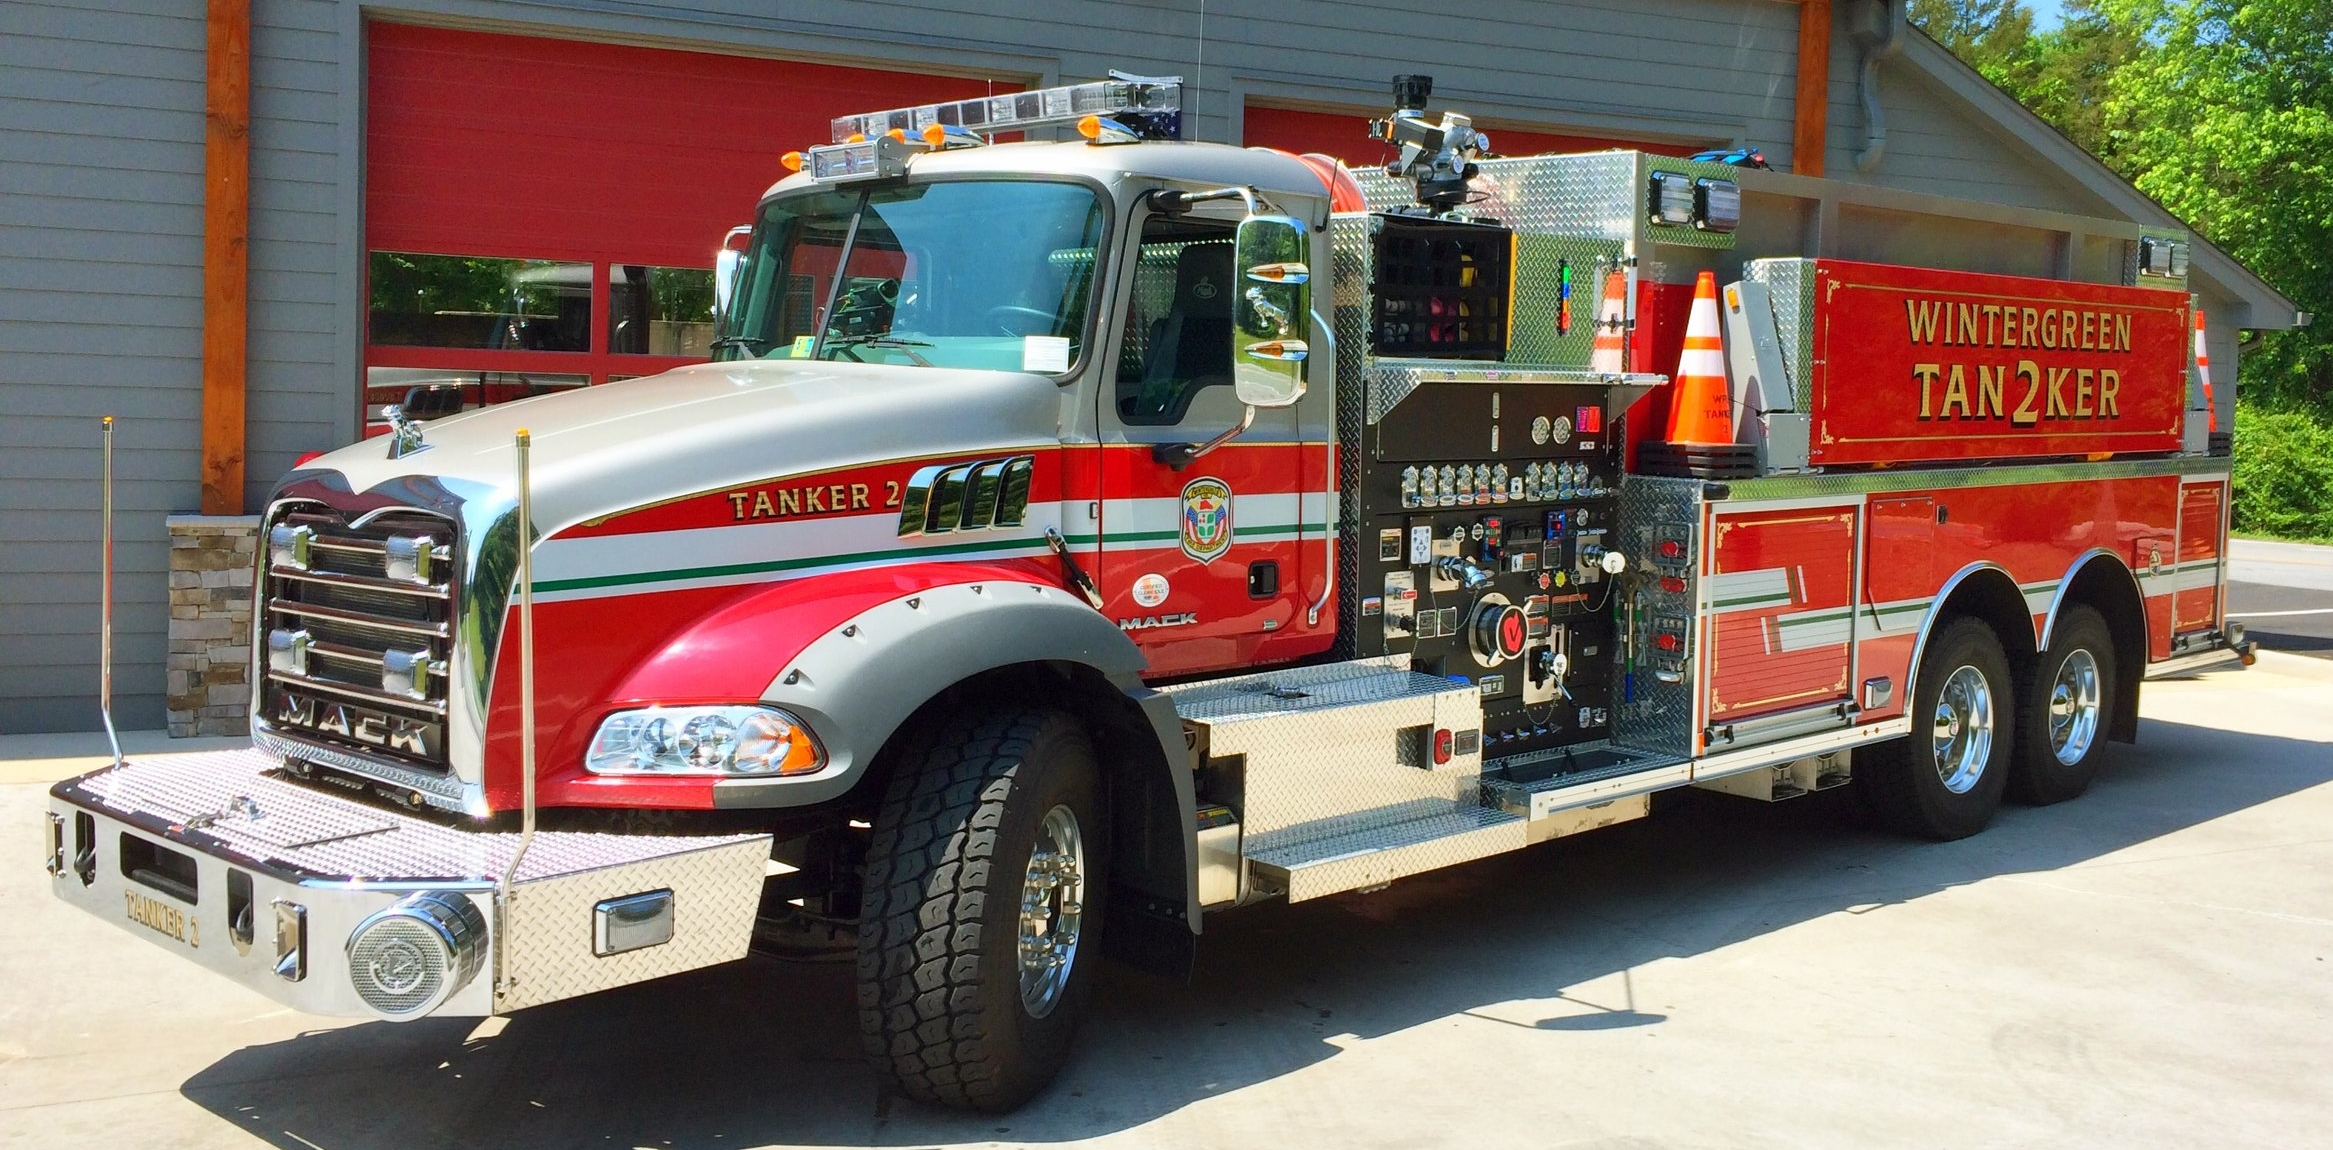 Tanker 62  - 2015 Rosenbaur Pumper/Tanker on a 2015 Mack Granite Chassis. 2500 gallons of water. 1500GPM Waterous pump with Compressed Air Foam System. 505 horse-power engine with Allison automatic transmission.